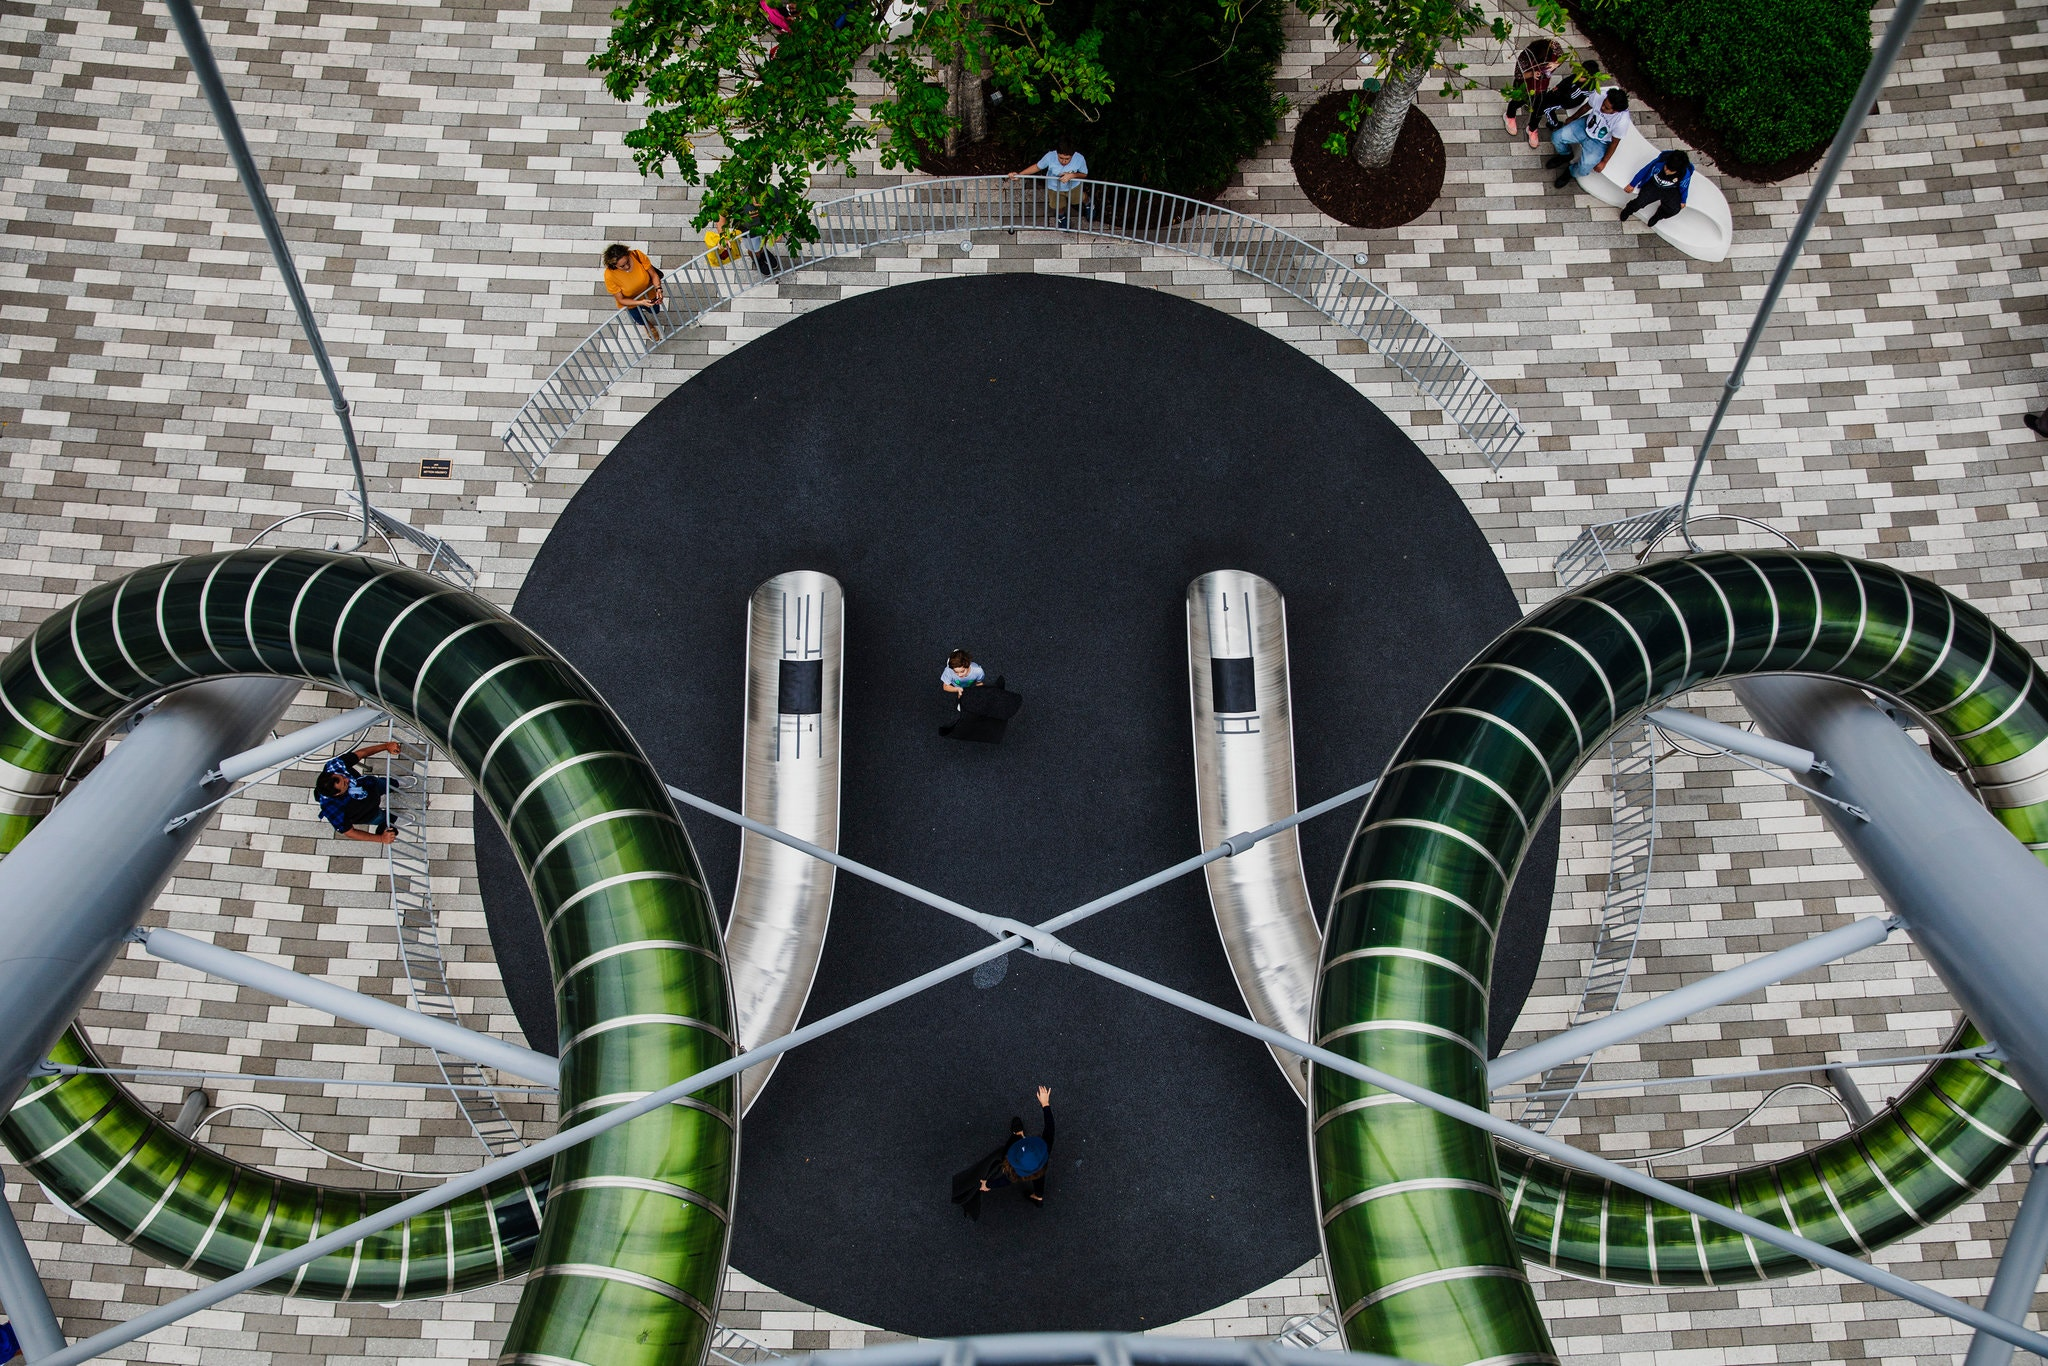 Aventura Mall in Florida began offering rides down a nine-story, double-chute tower slide in 2017.Credit...Scott McIntyre for The New York Times